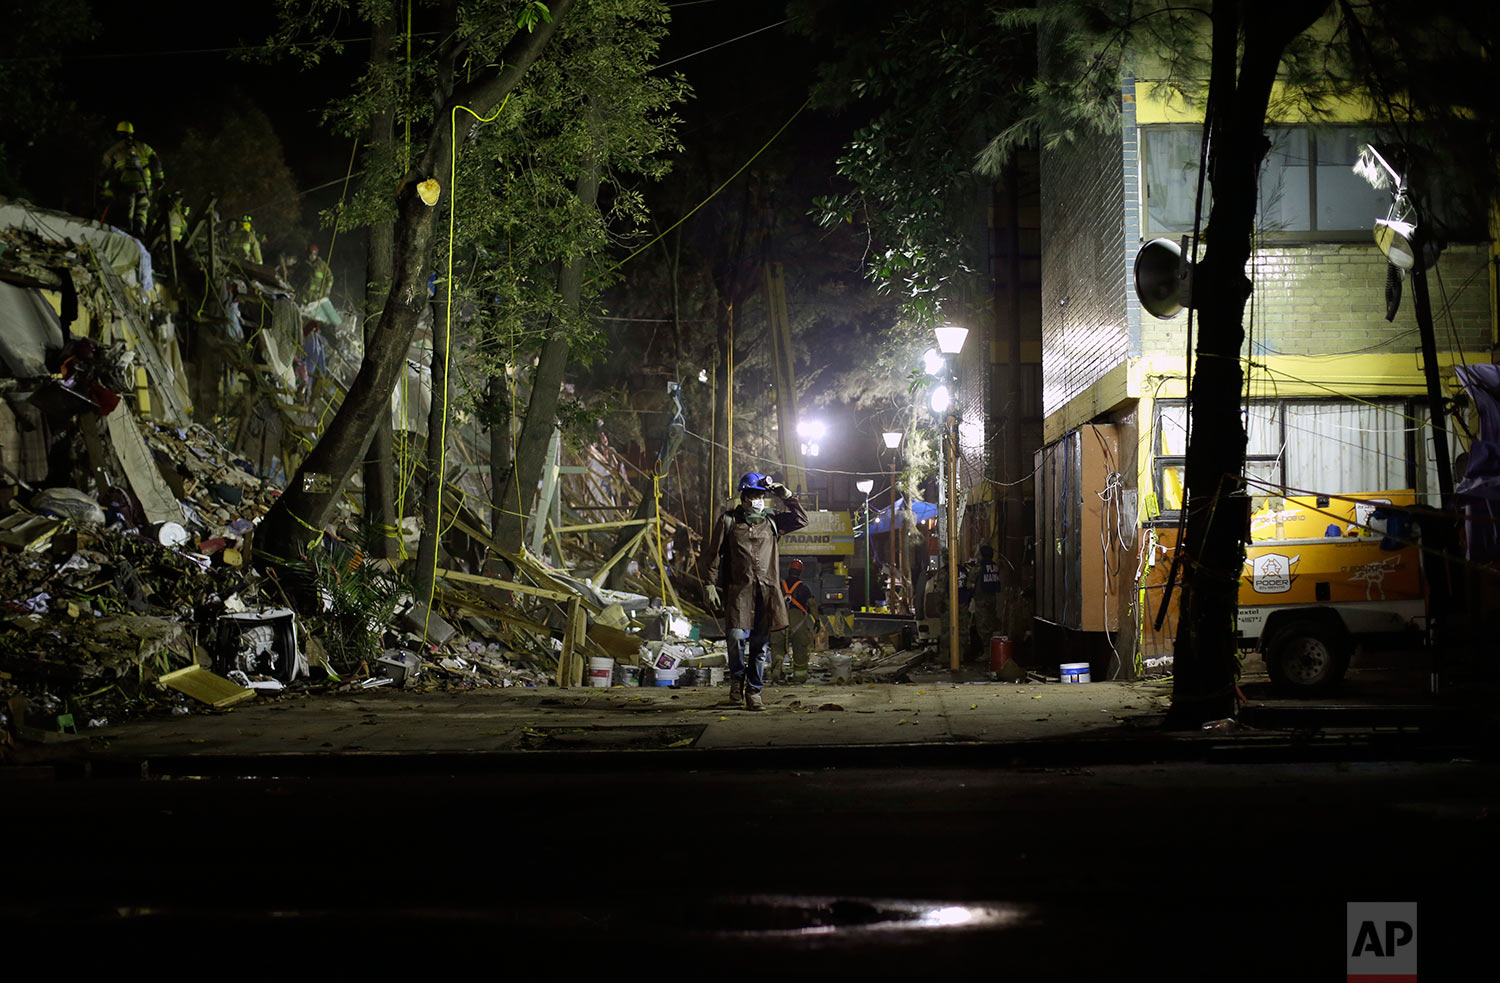 A rescue worker walks between a collapsed apartment building and another that remained standing at a large apartment complex in the Tlalpan neighborhood of Mexico City, Monday, Sept. 25, 2017.  (AP Photo/Natacha Pisarenko)